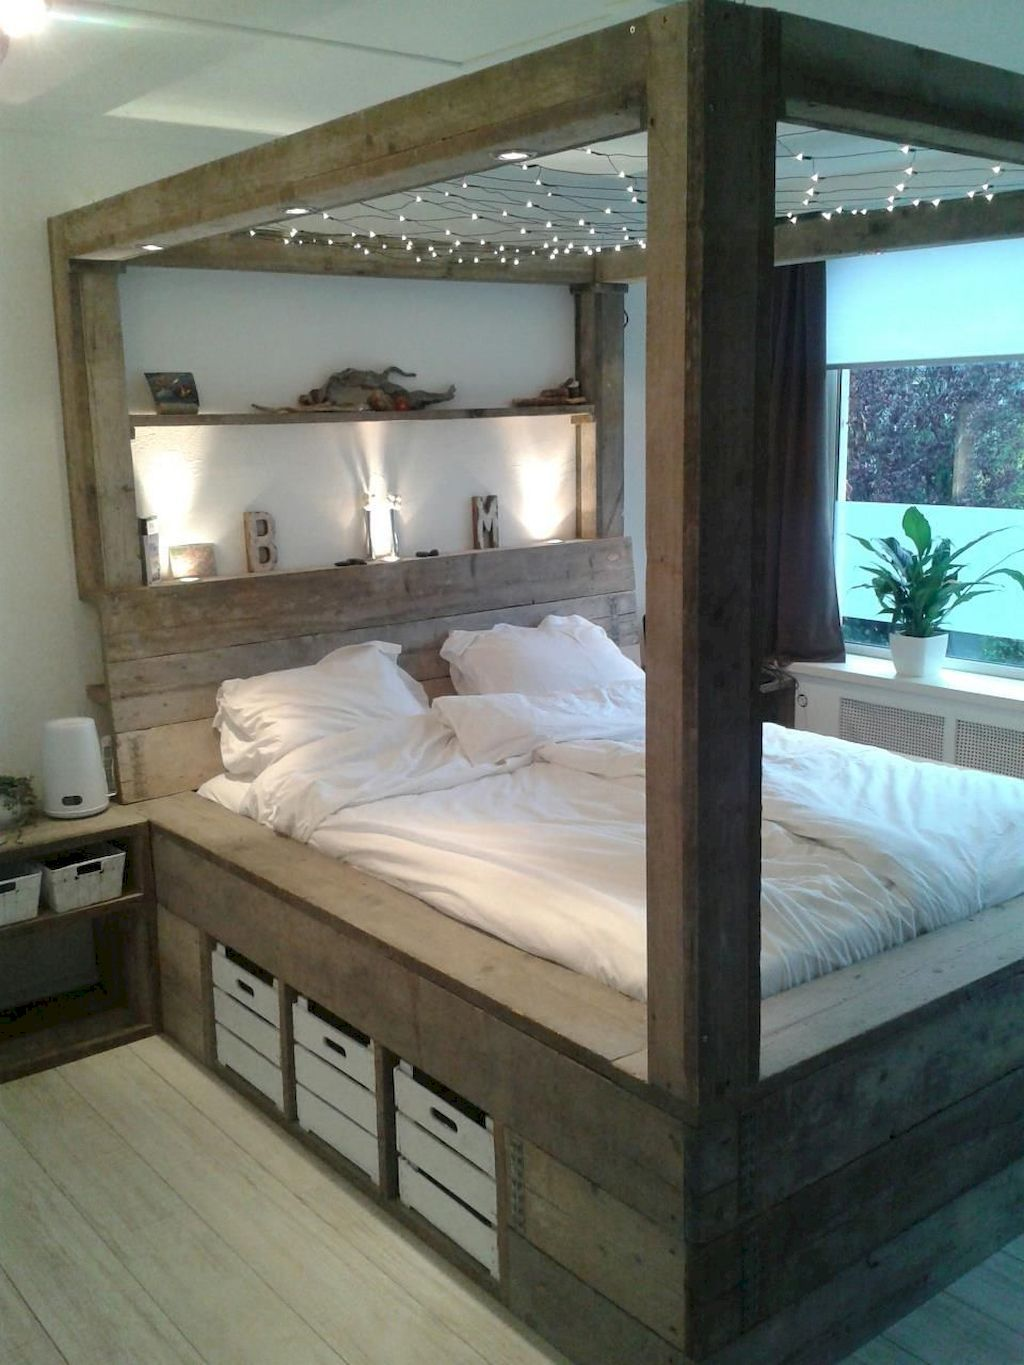 200+ Fabulously Transform Bedroom Decor for Romantic Retreat images